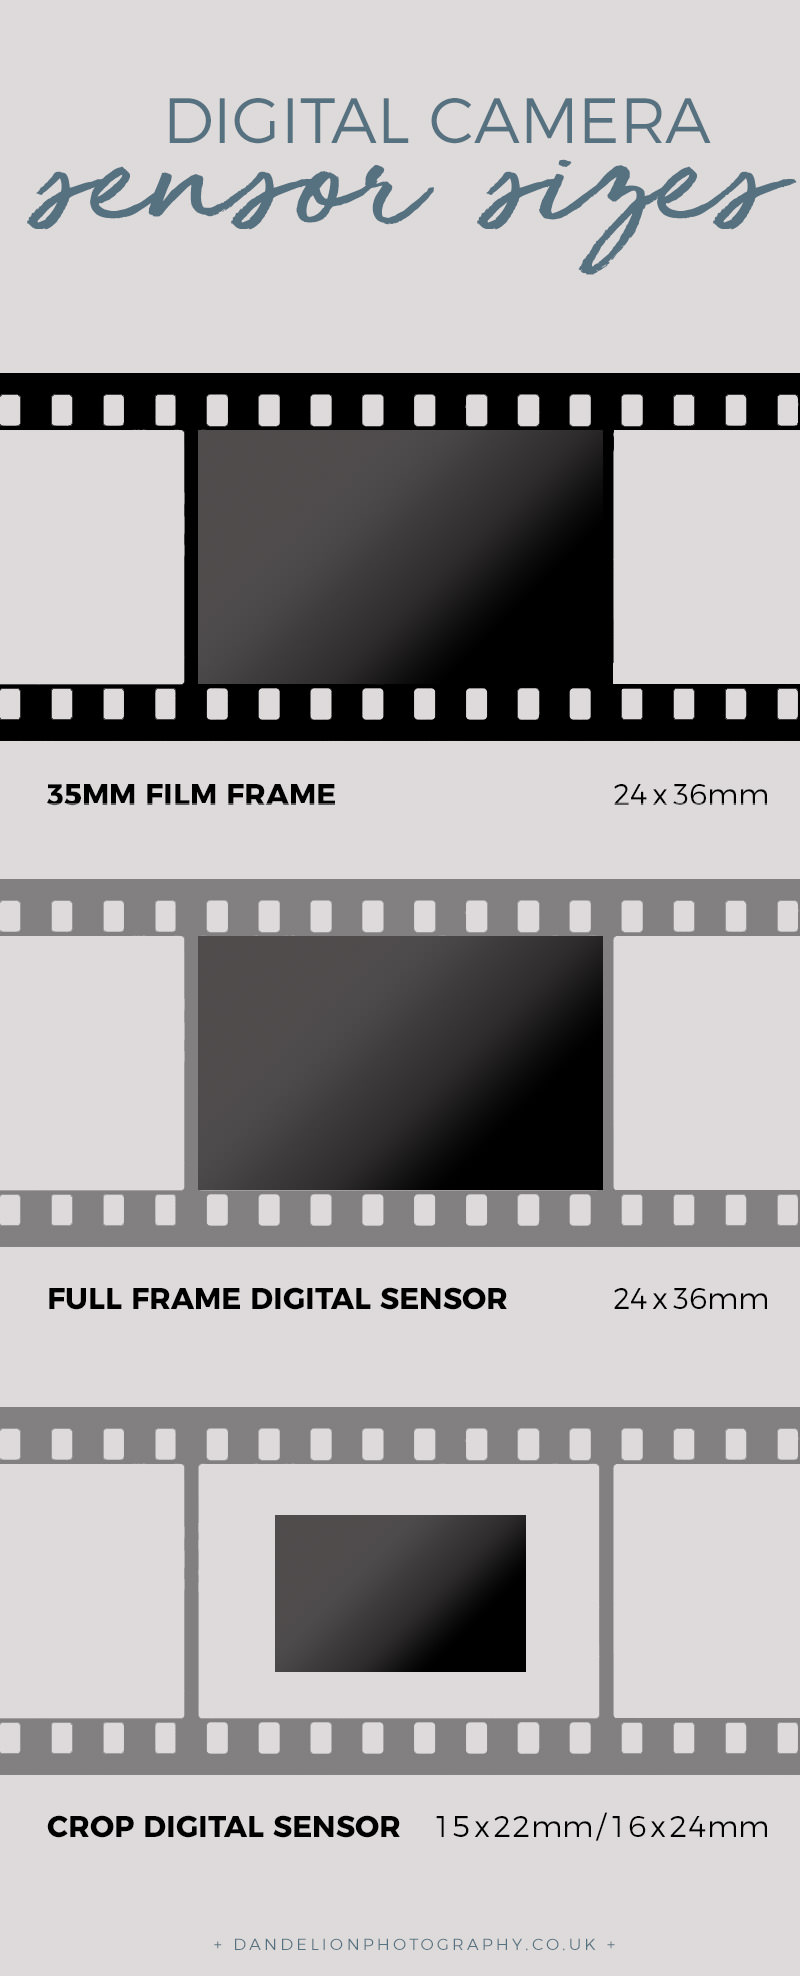 35mm film and sensor diagram.jpg